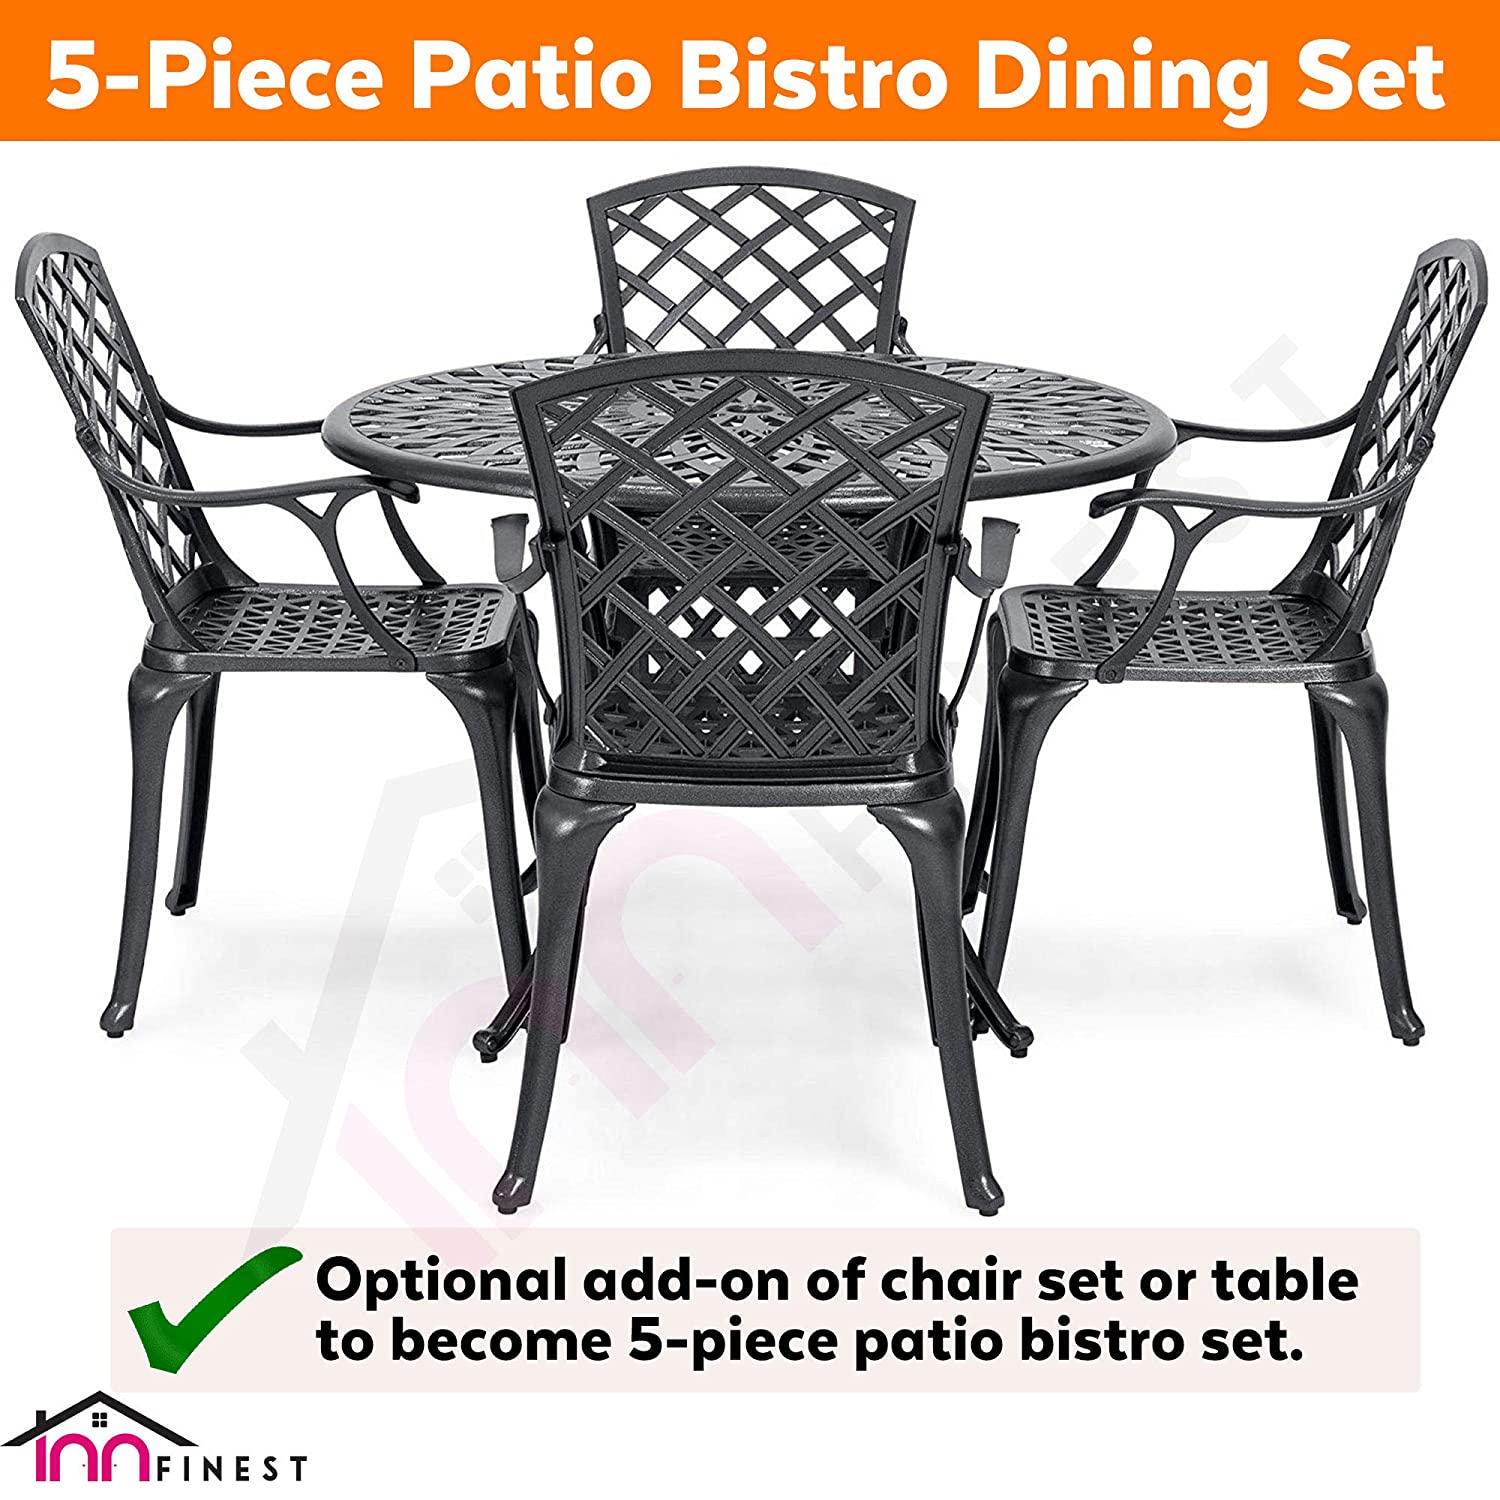 Black for Outdoor Furniture Patio Deck Garden Optional Add-on 6 Chairs for 7 Piece Set Rust Resistant Lattice Weave Design 72/″ Patio Bistro Dining Table Cast Aluminum Umbrella Hole Table